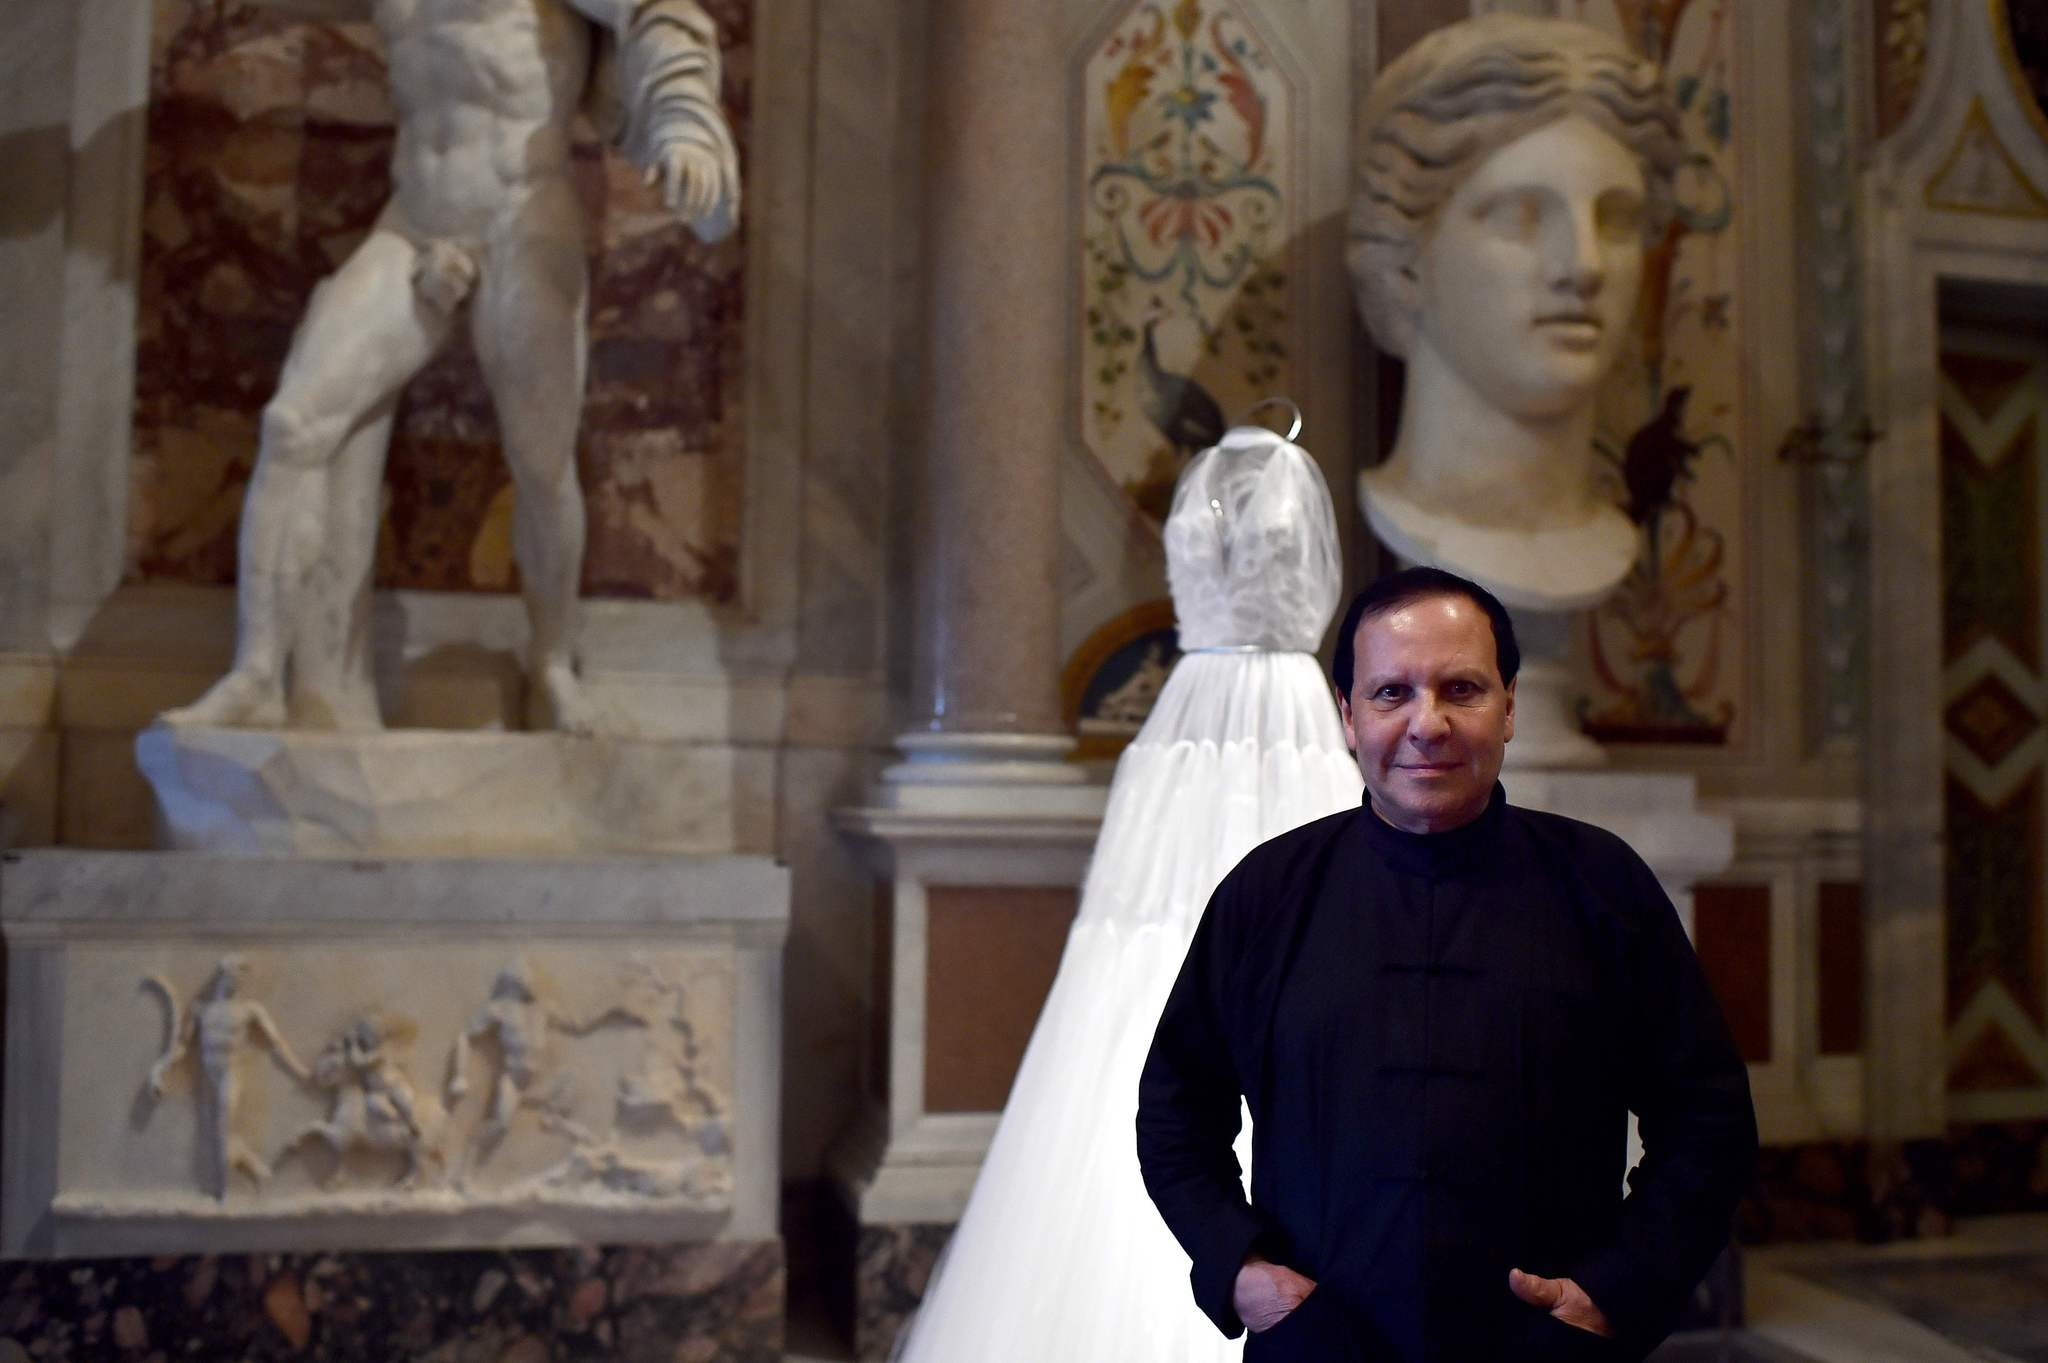 Tunisian-born, Paris-based couturier Azzedine Alaia posing during the press preview of the exhibition , Azzedine Alaia's soft sculpture, at the Galleria Borghese in Rome. (AFP Photo)